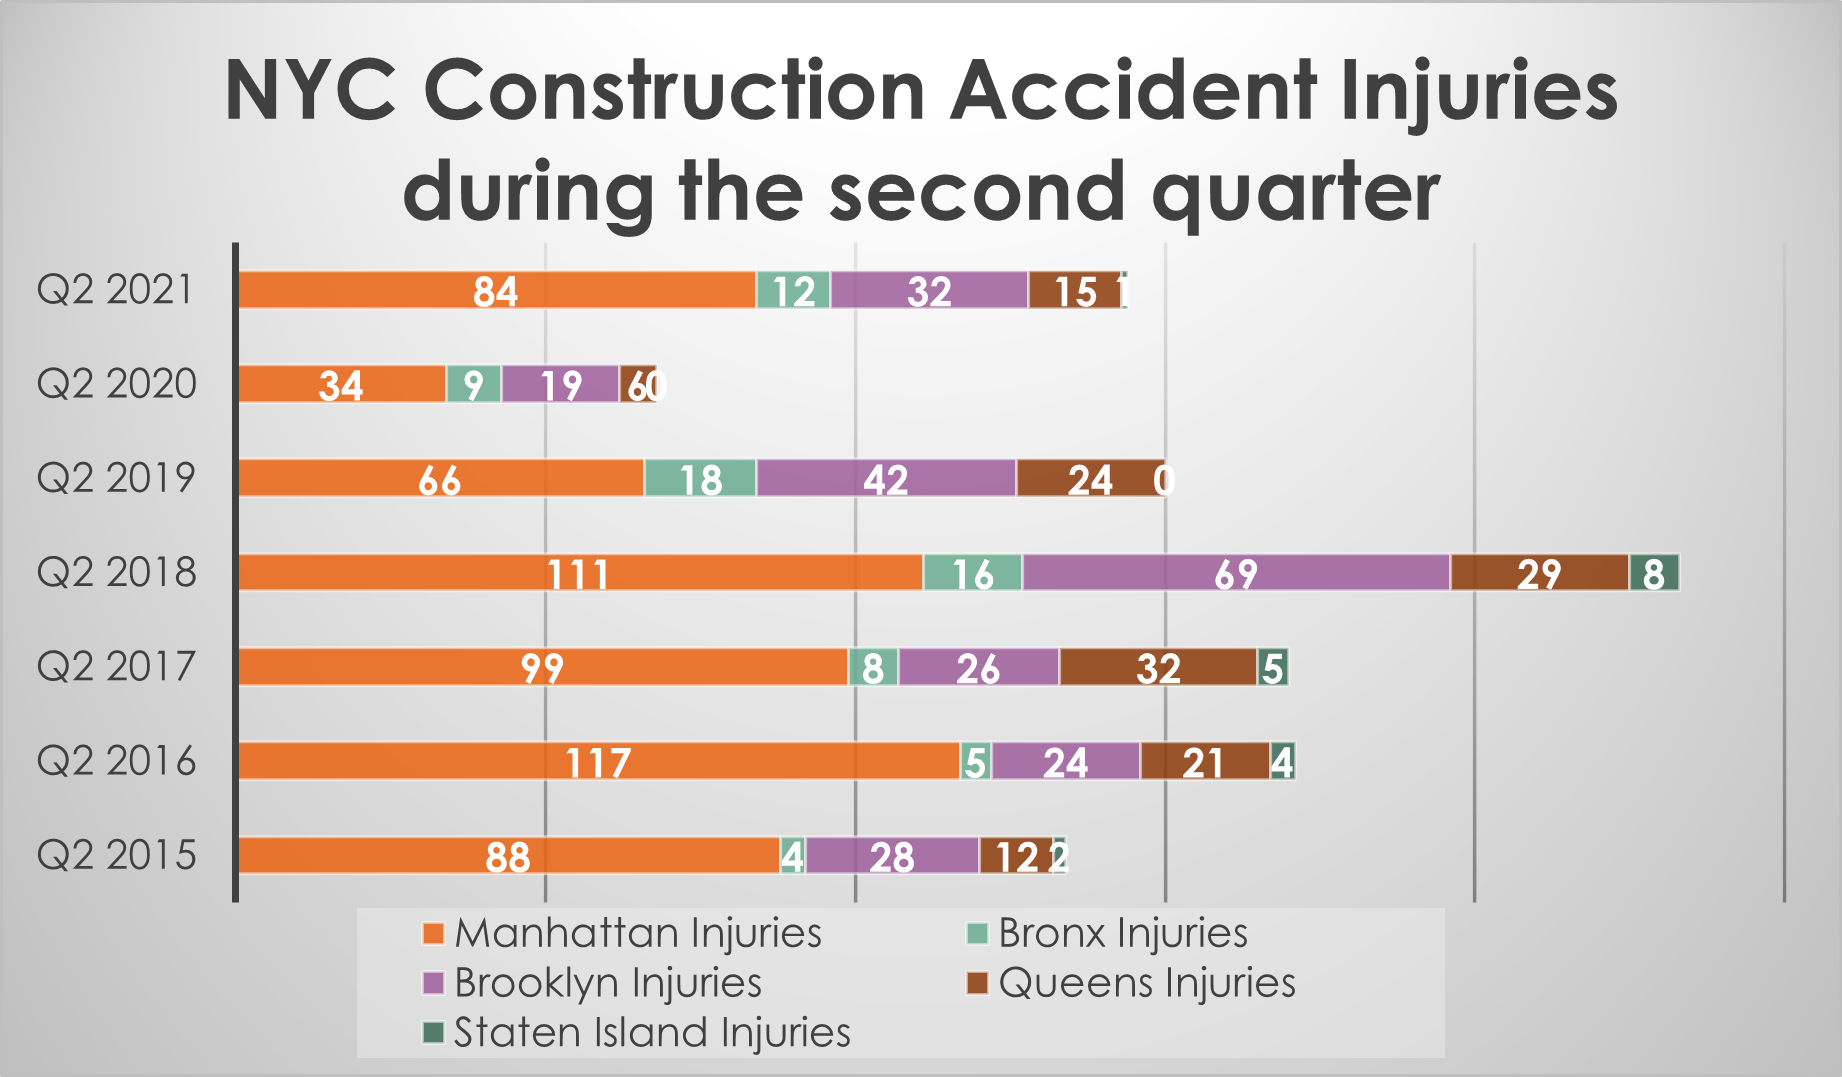 Construction accident injuries by NYC borough